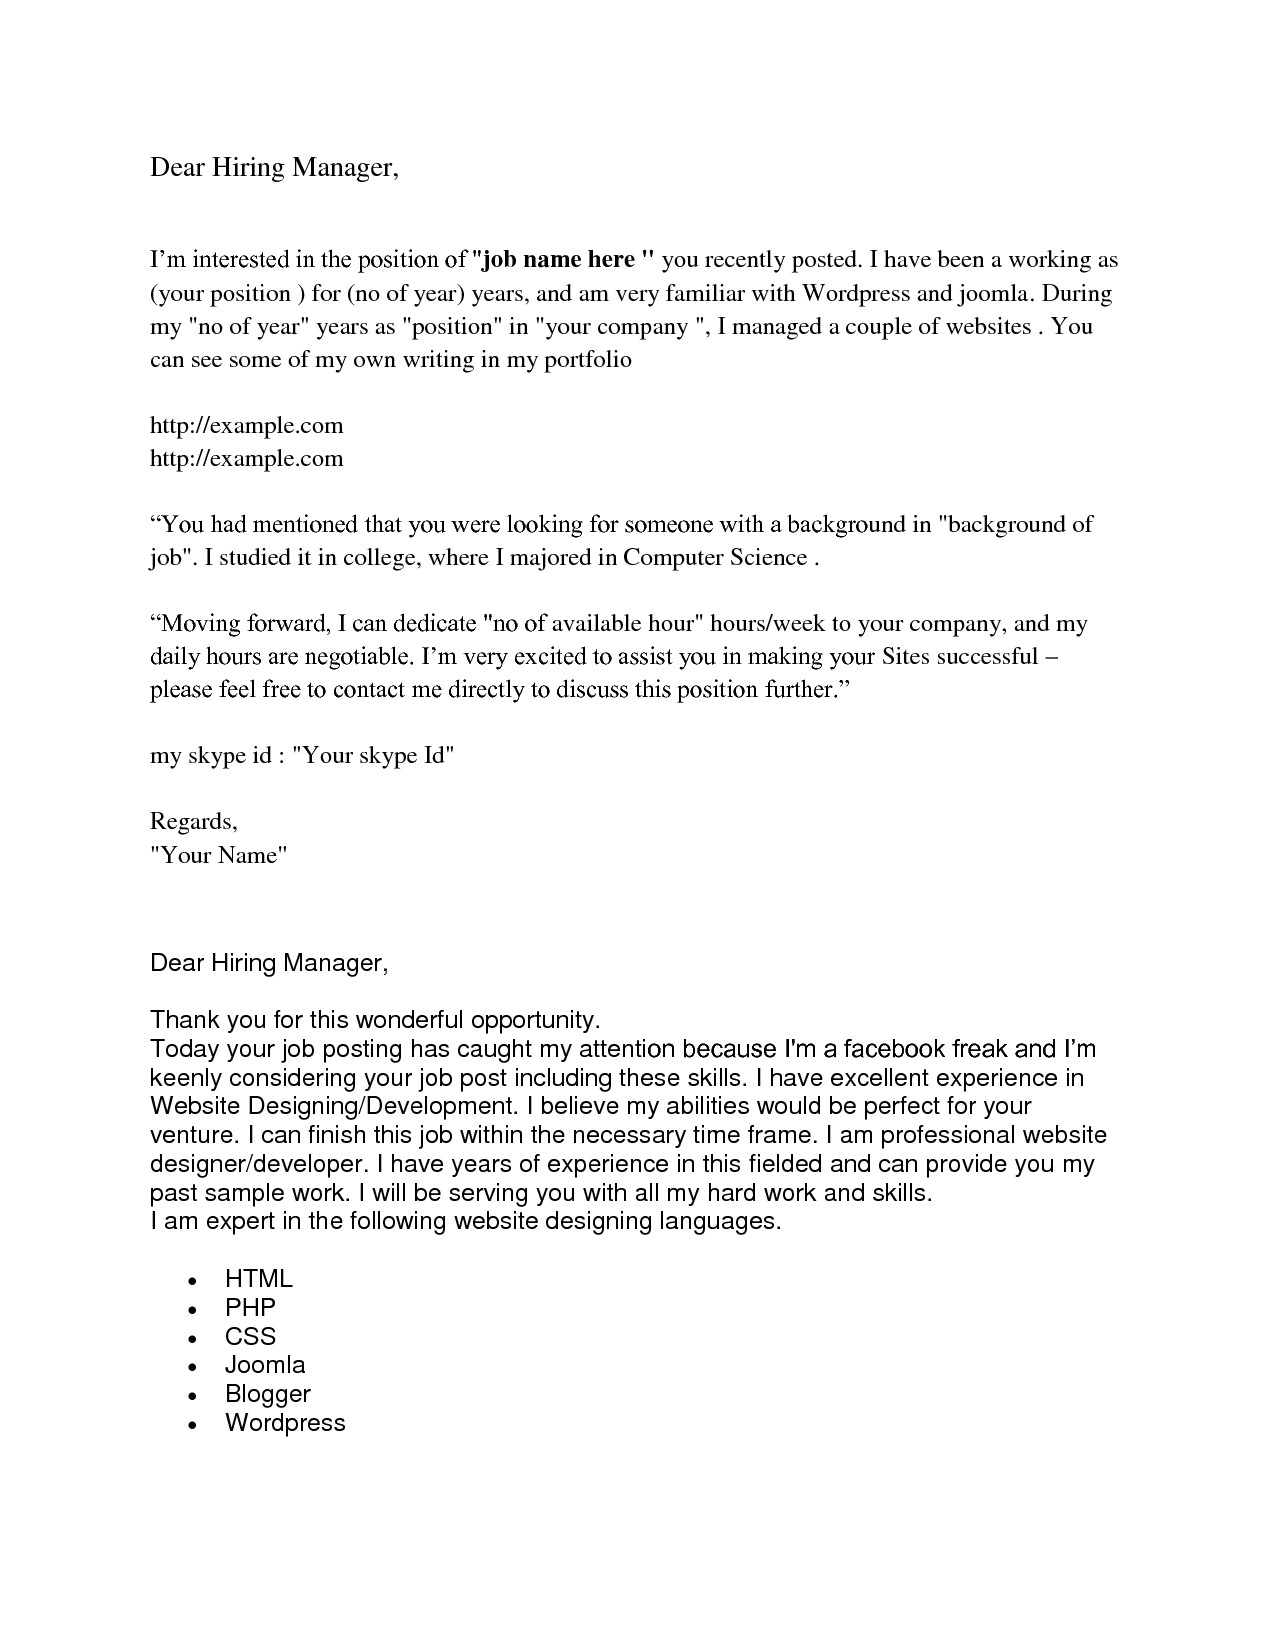 address cover letter without name